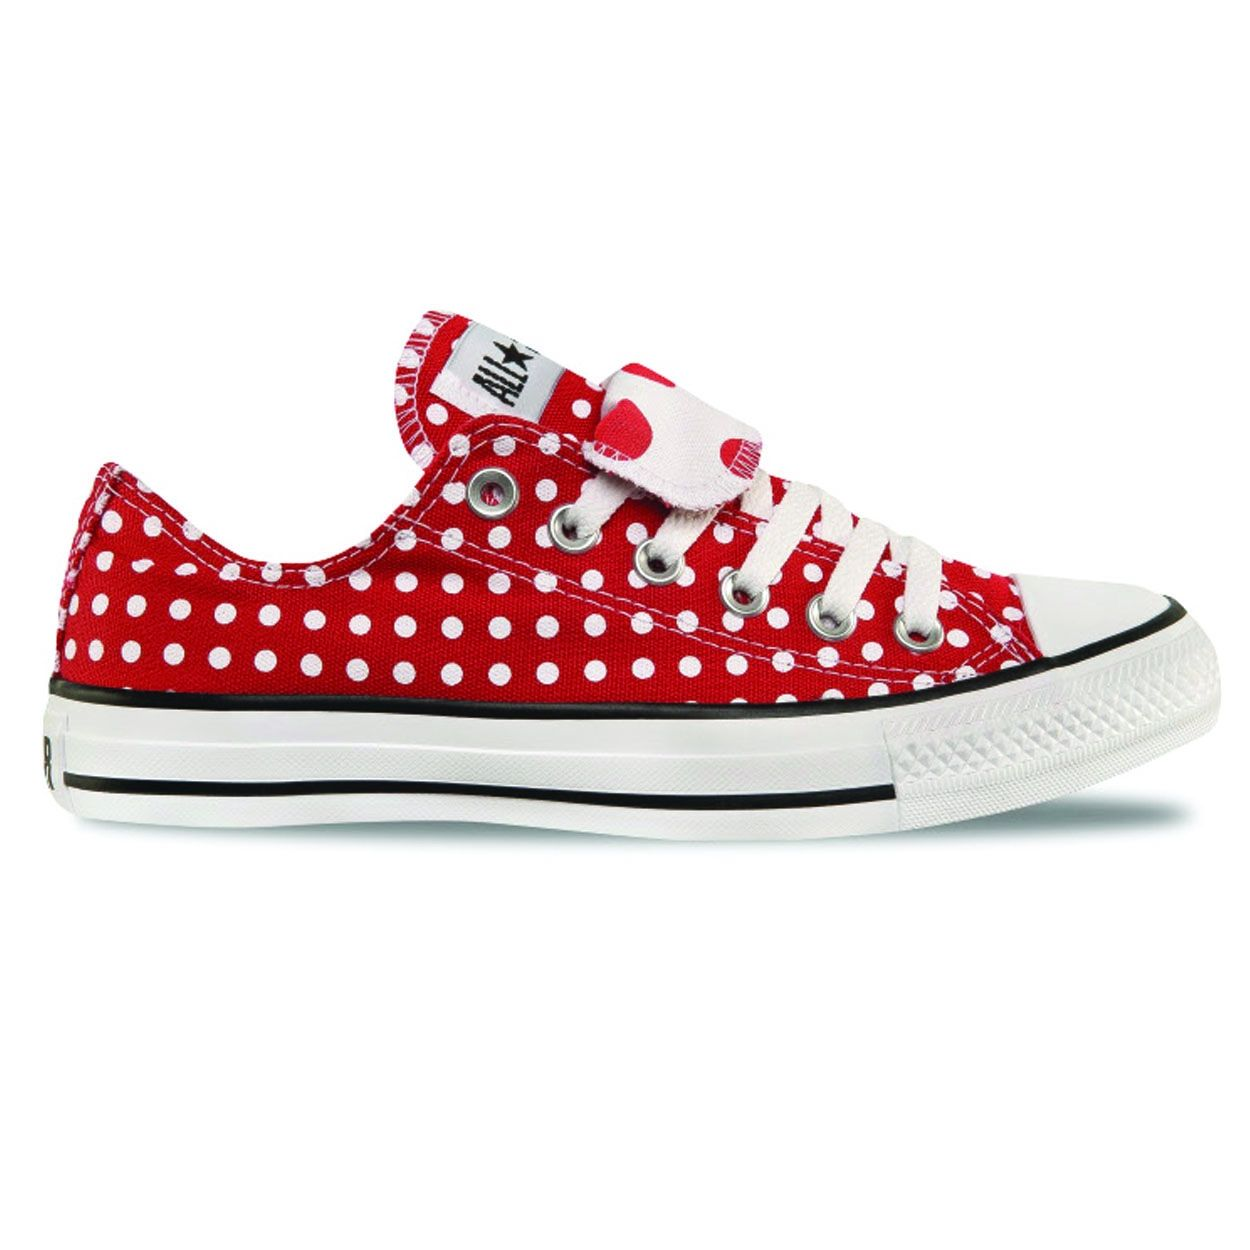 Polka Dot Converse - Red More 34e73a4dc